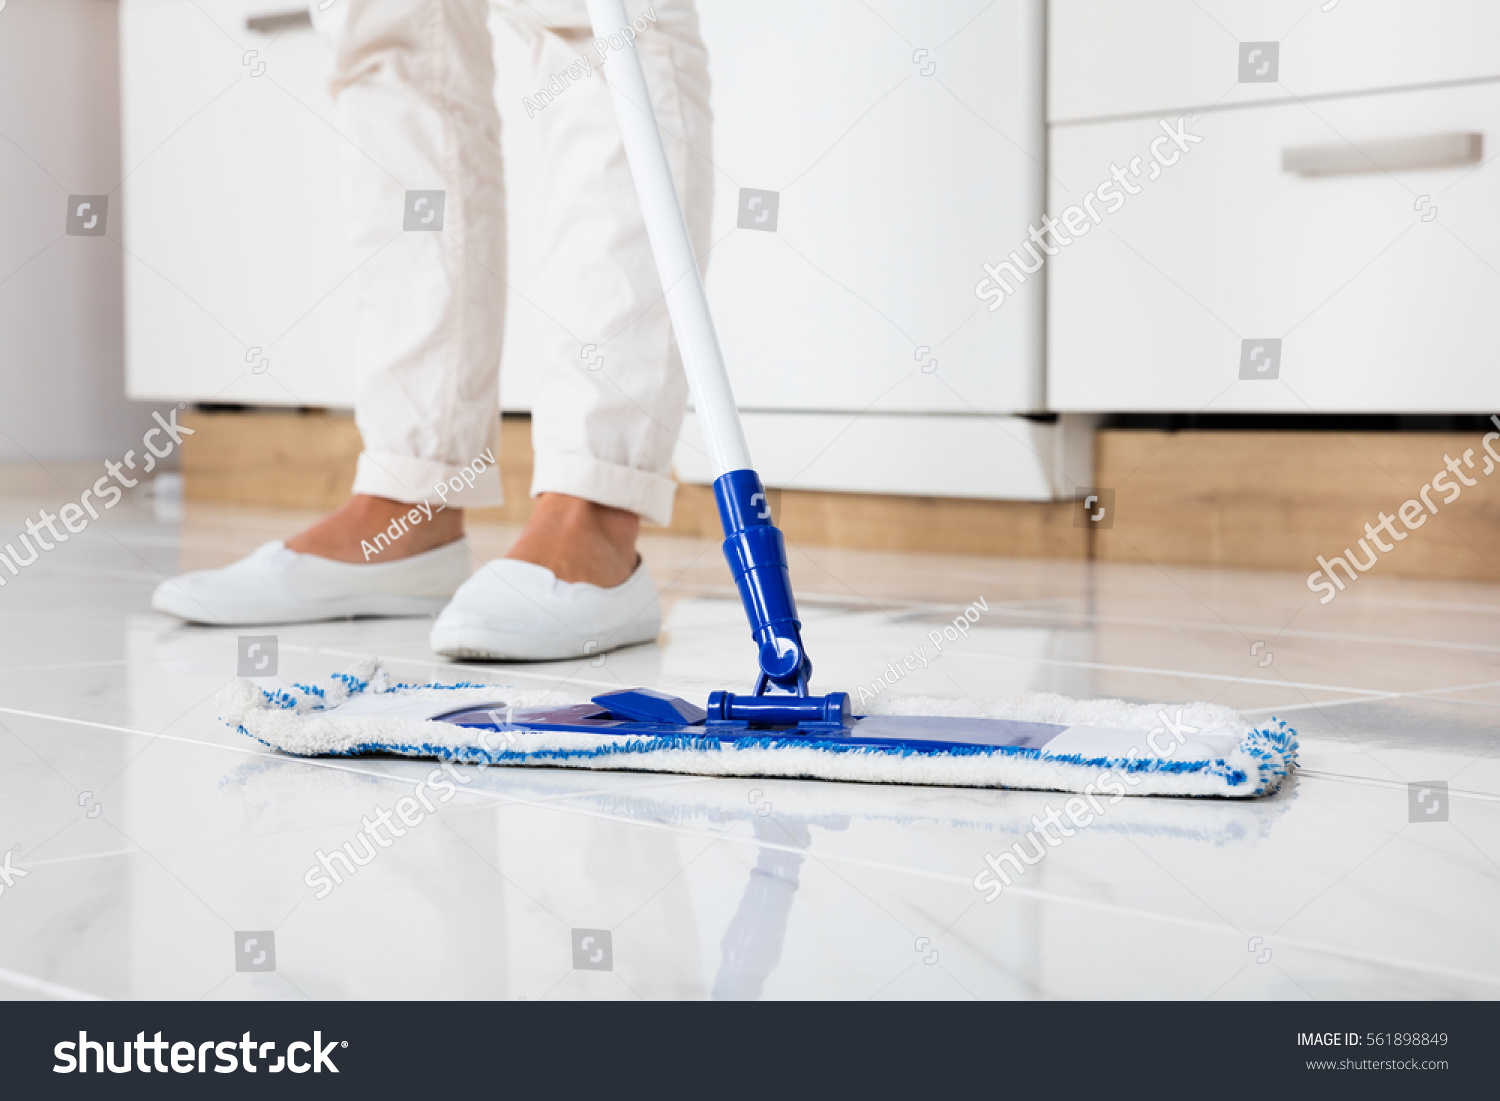 Mopping Kitchen Floor Cleaning Service Woman Mopping Floor Kitchen Stock Photo 561898849